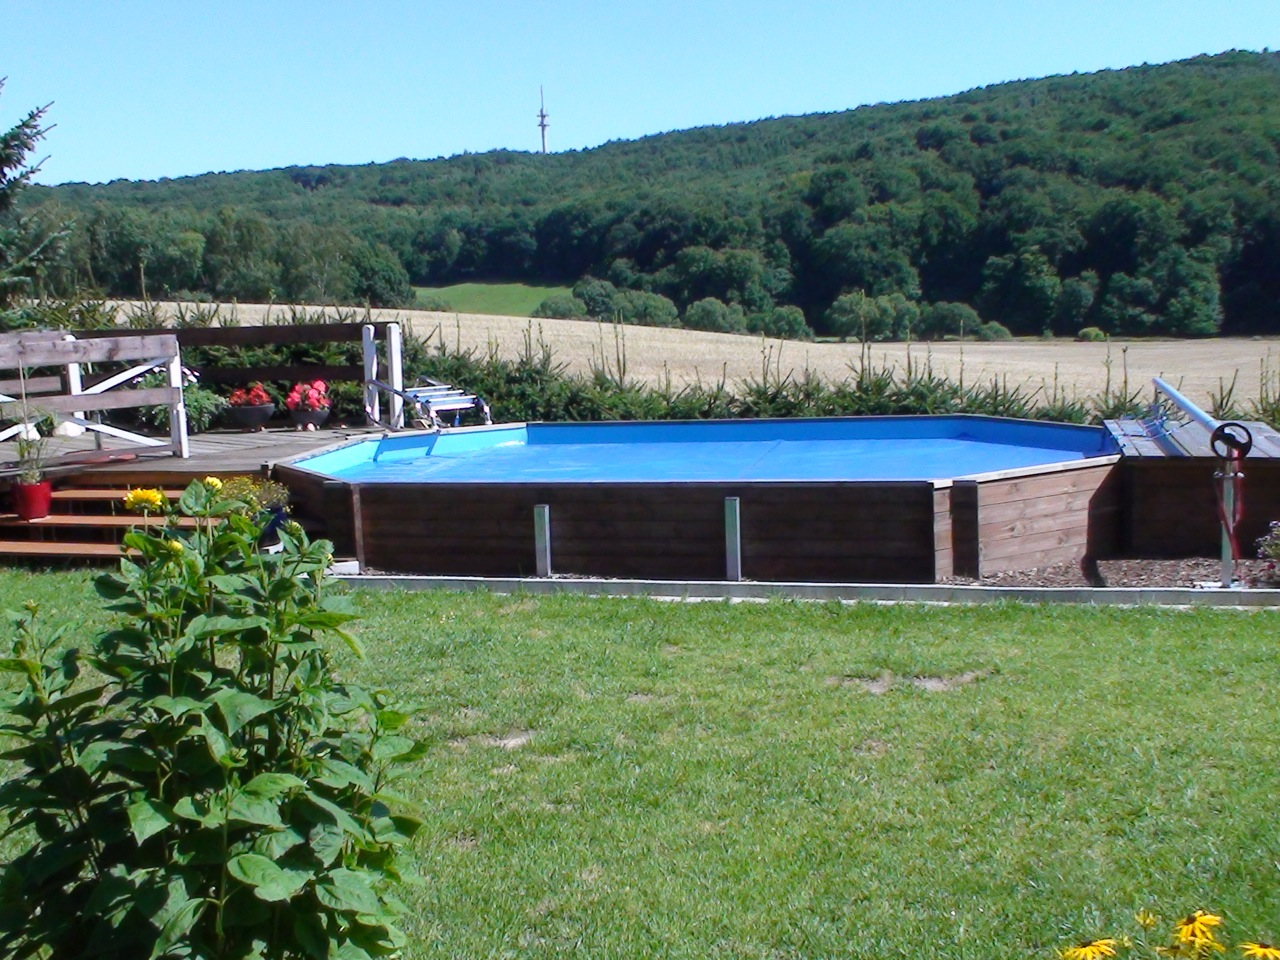 Ooloo life swimmingpool holzpool bis 40 m mit for Aufstellpool aus holz